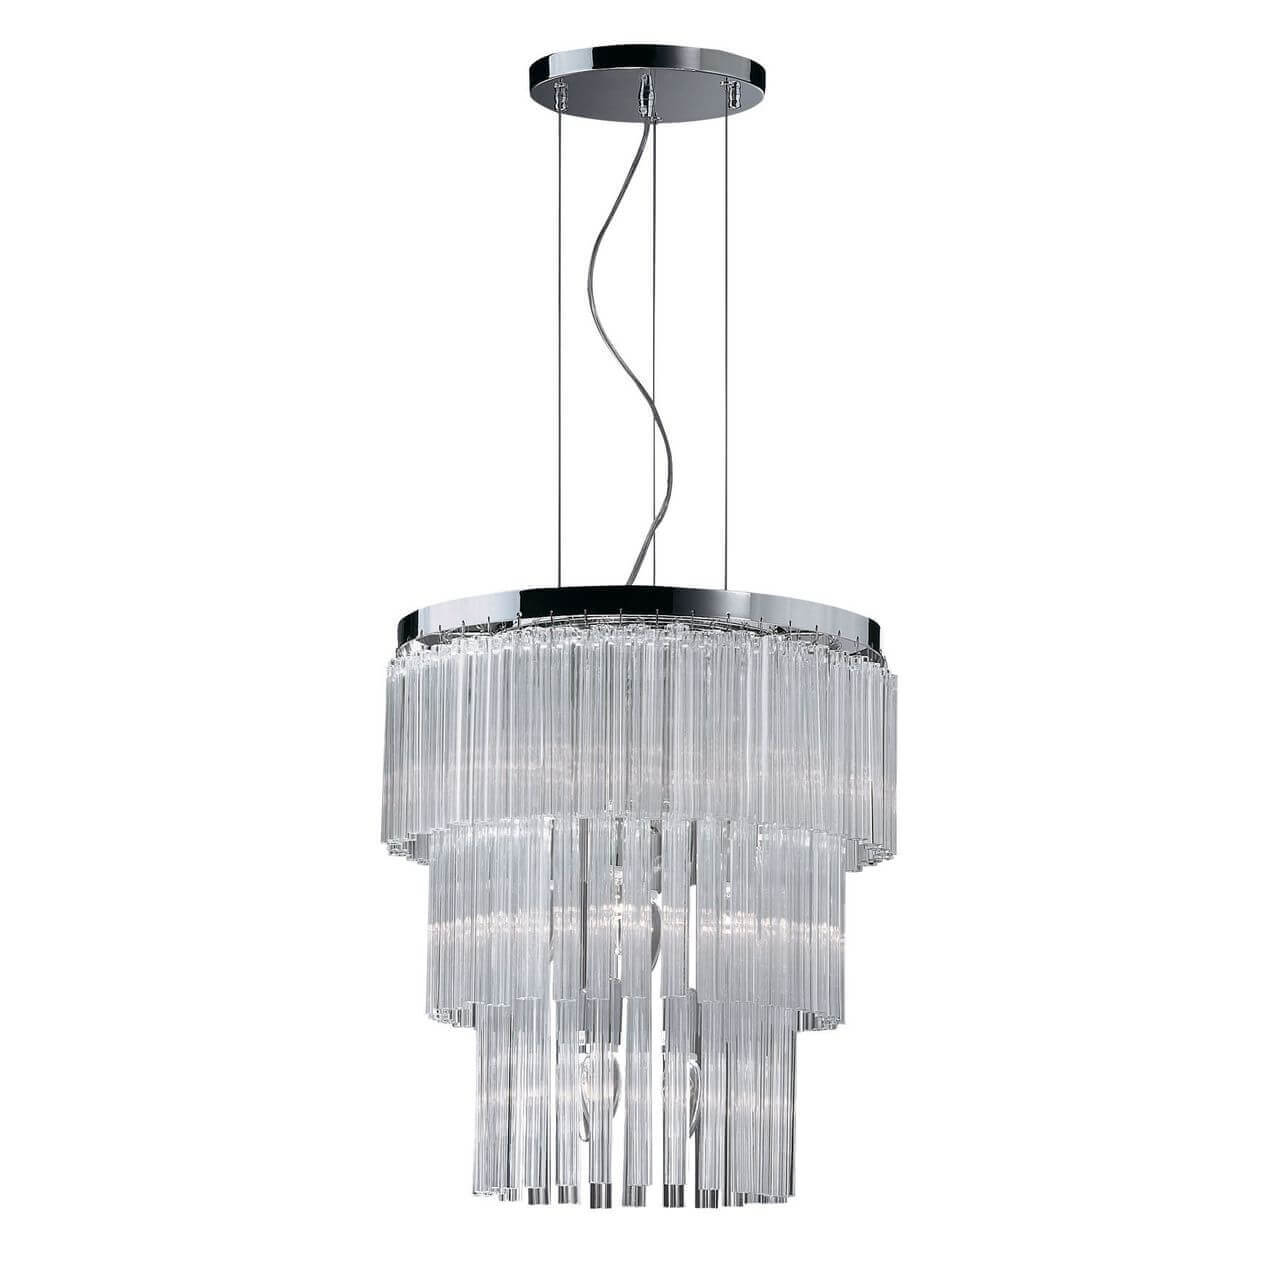 Люстра Ideal Lux Elegant SP12